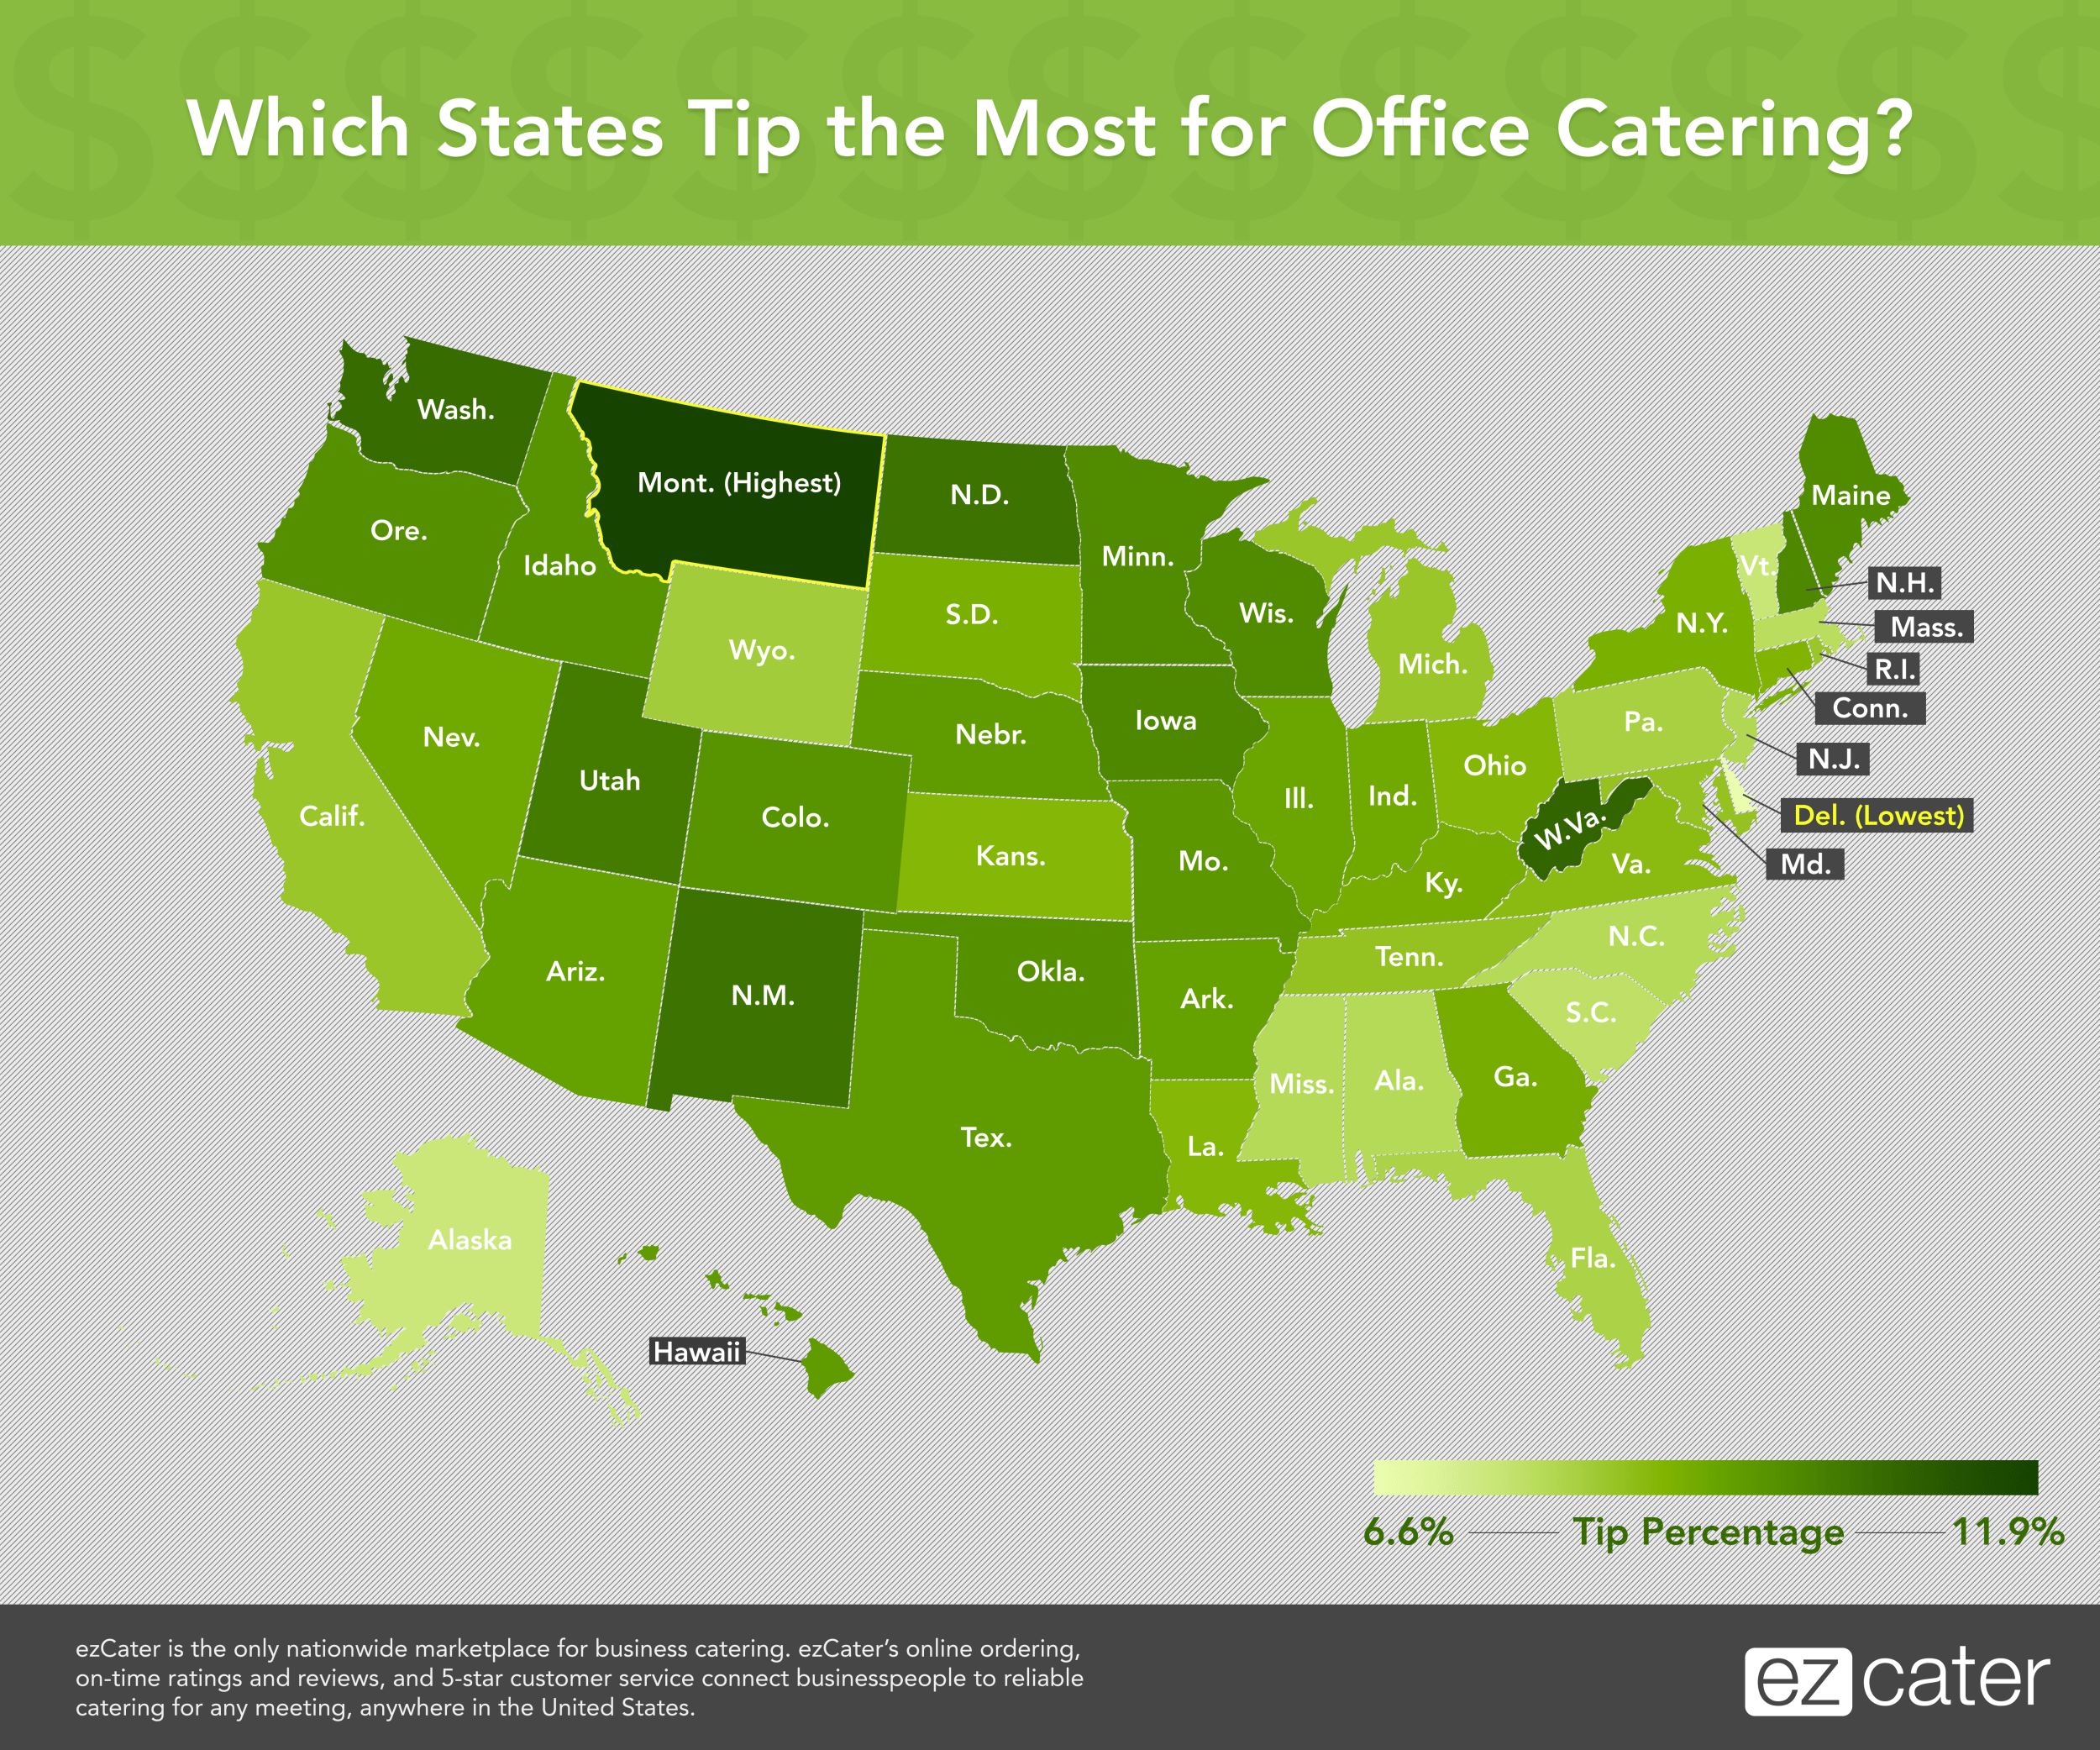 Tipping for Office Catering